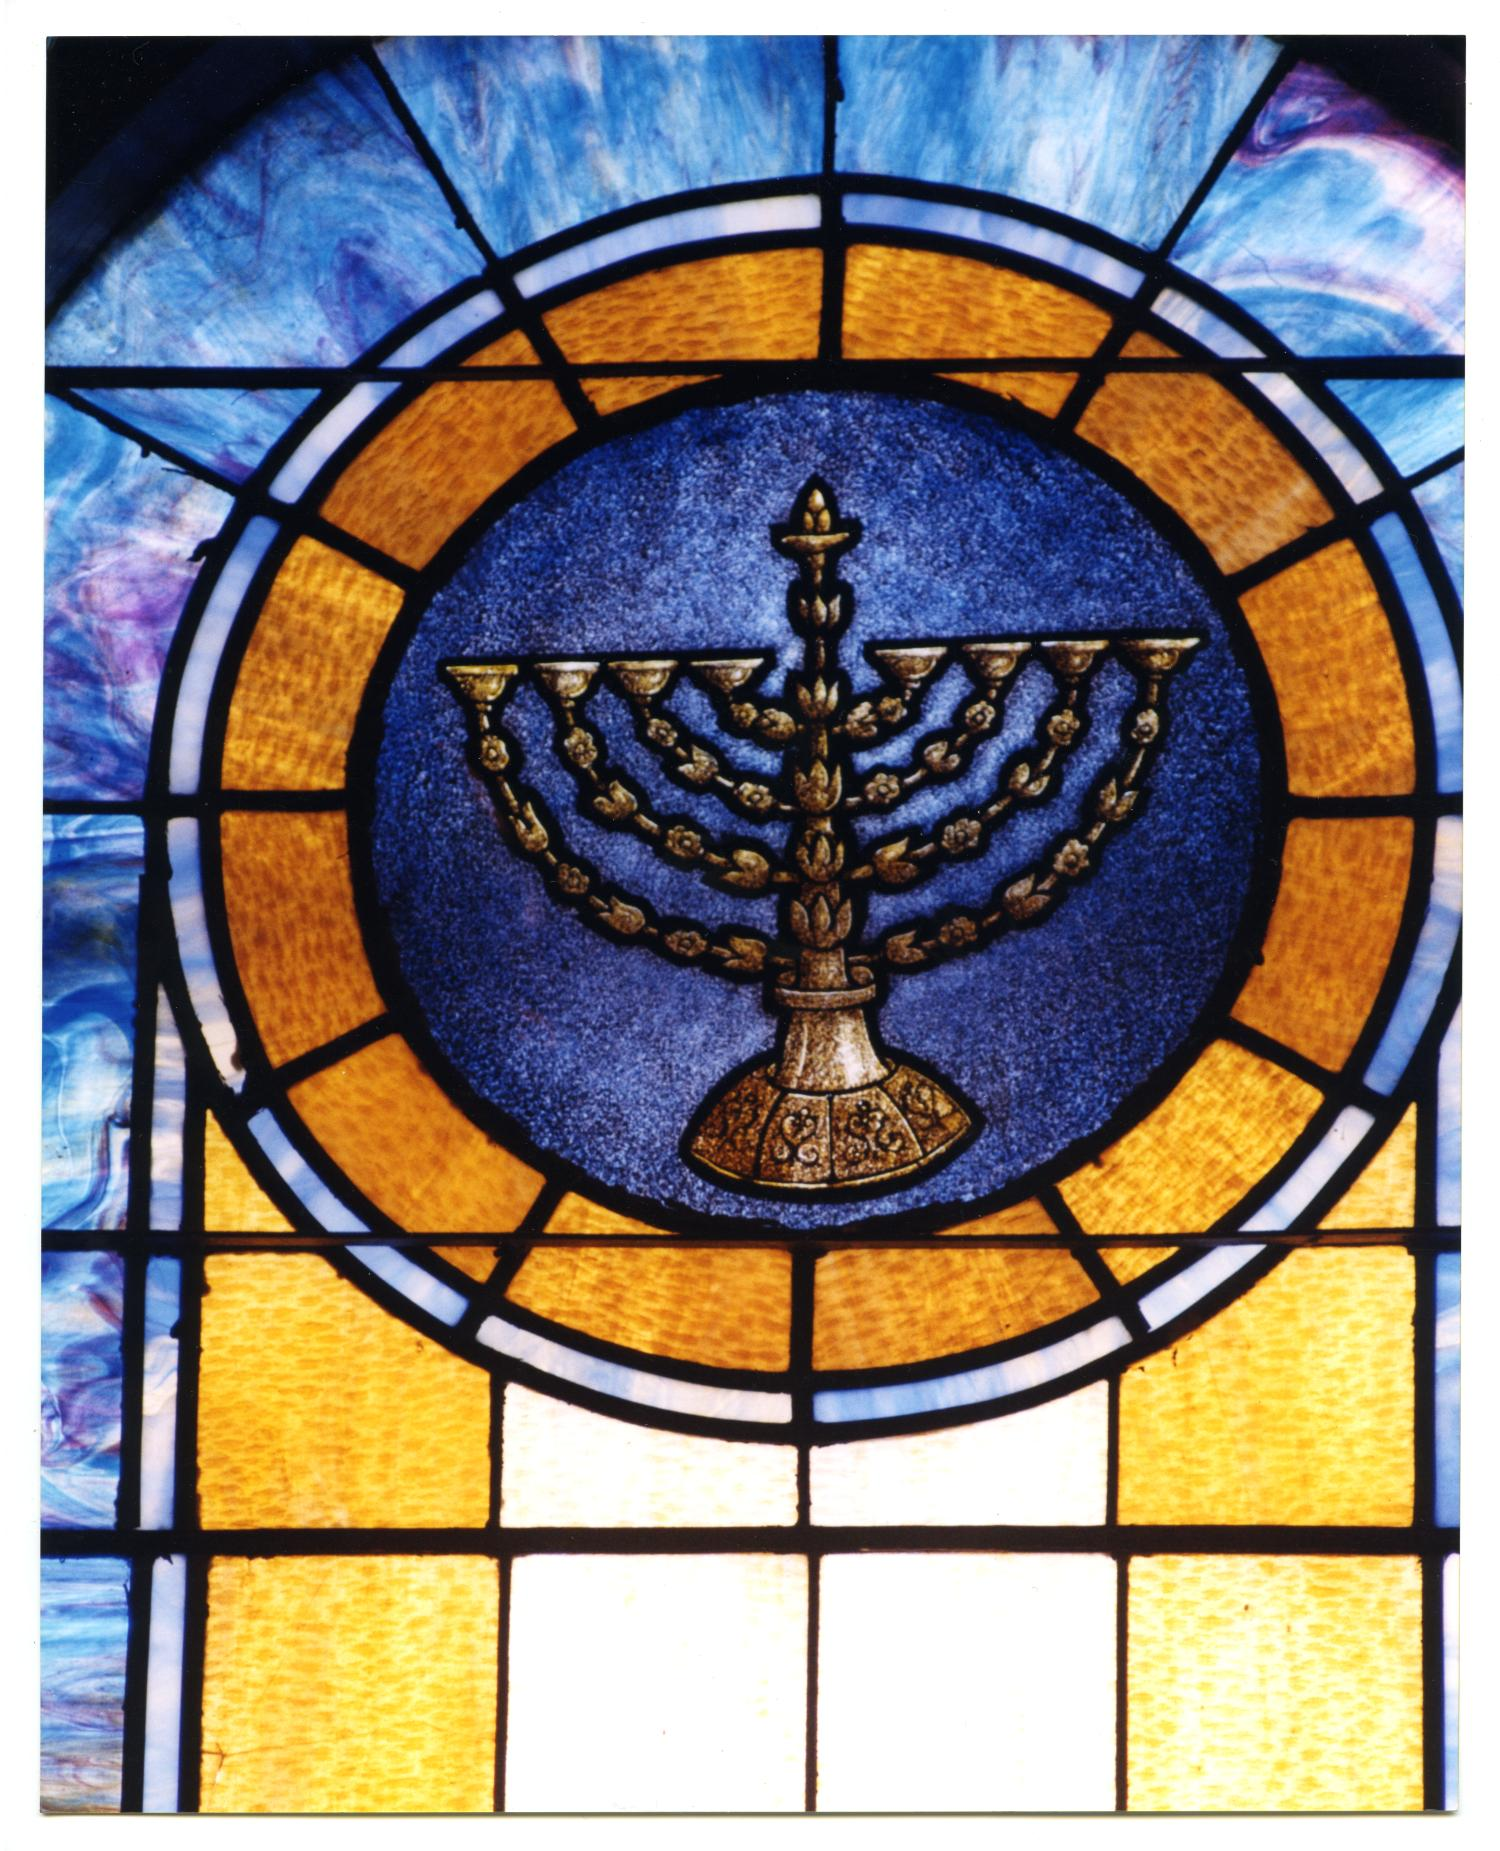 Stained Glass Window Pane Of Hanukkah Menorah The